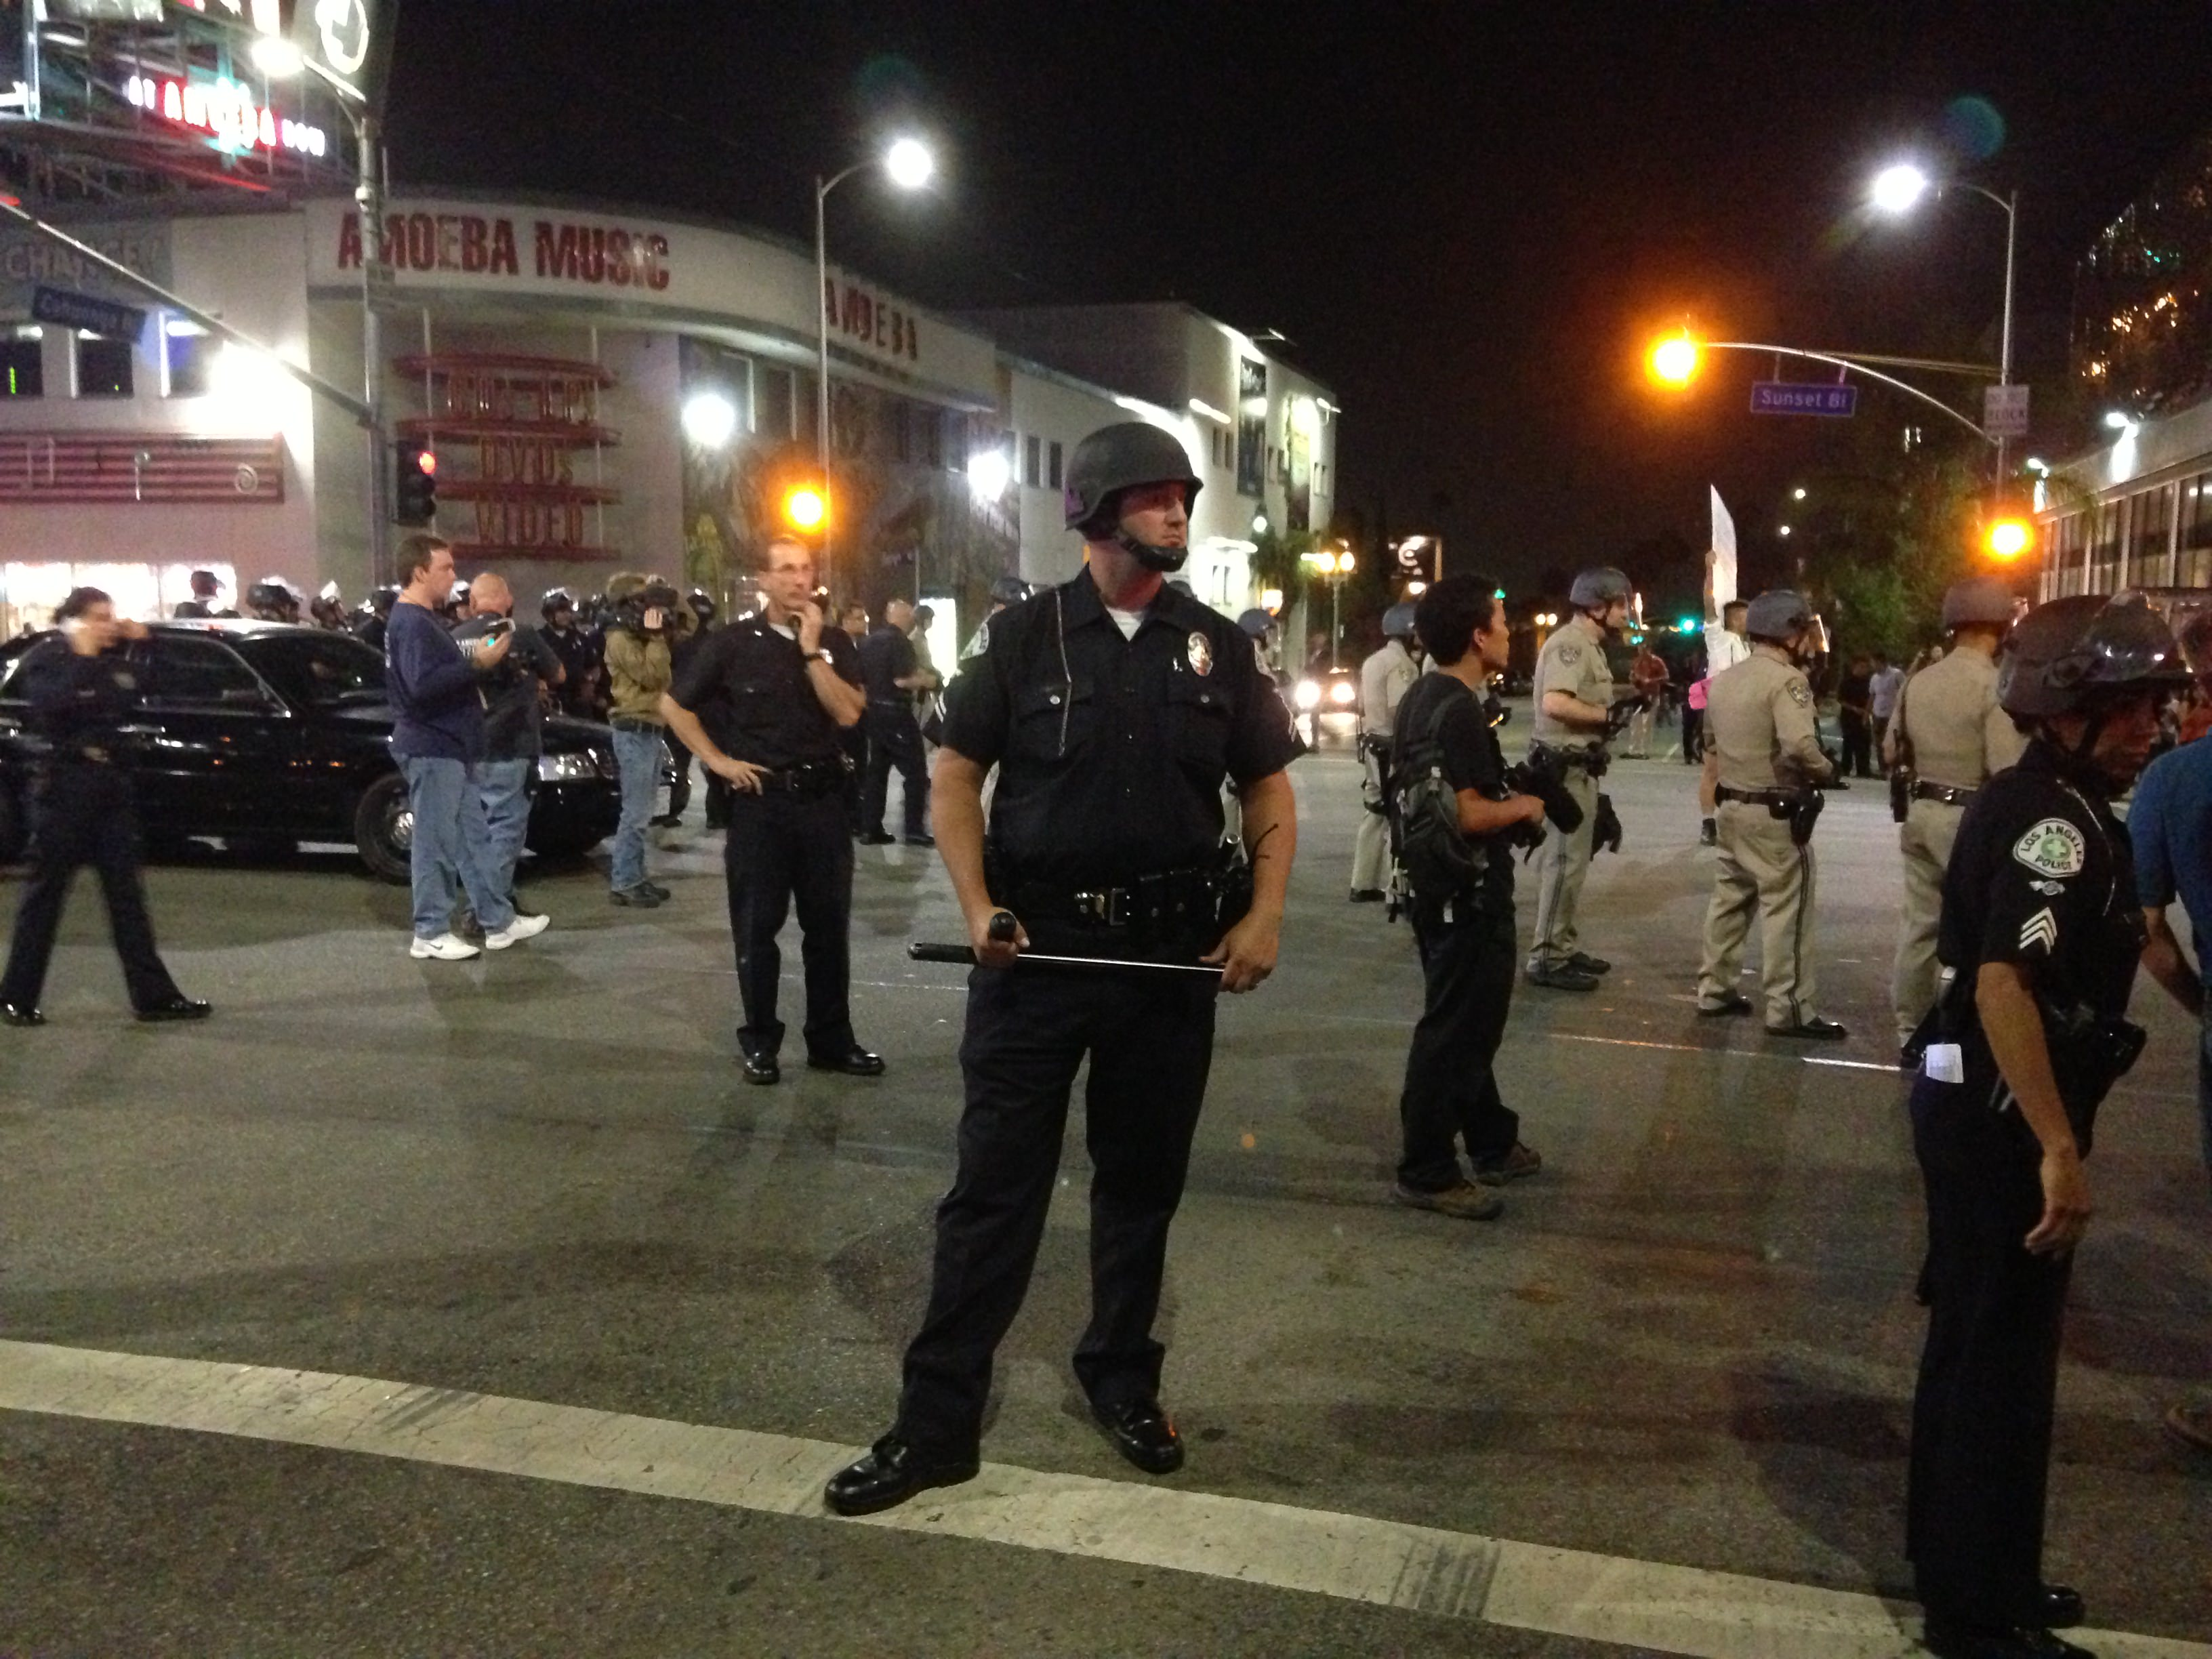 LAPD officer holds night stick as a part of a police line in Hollywood, Calif.